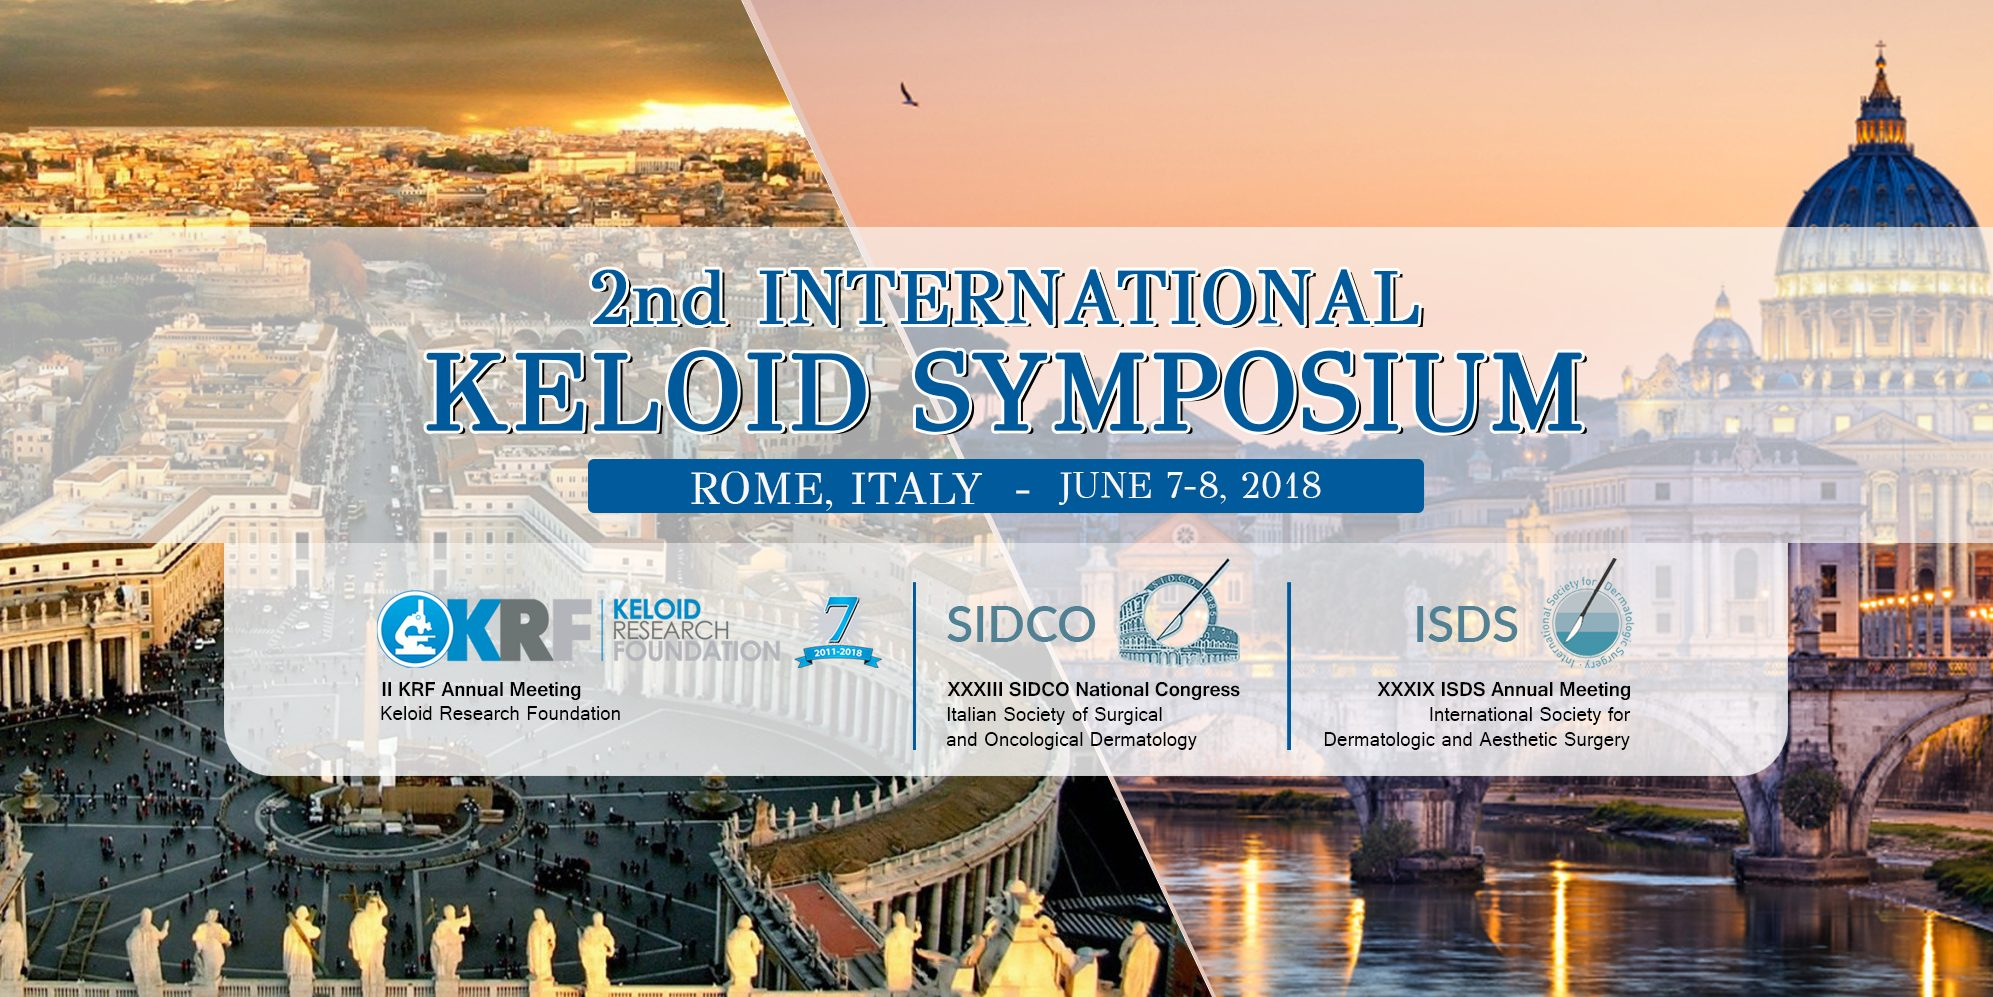 2nd International Keloid Symposium